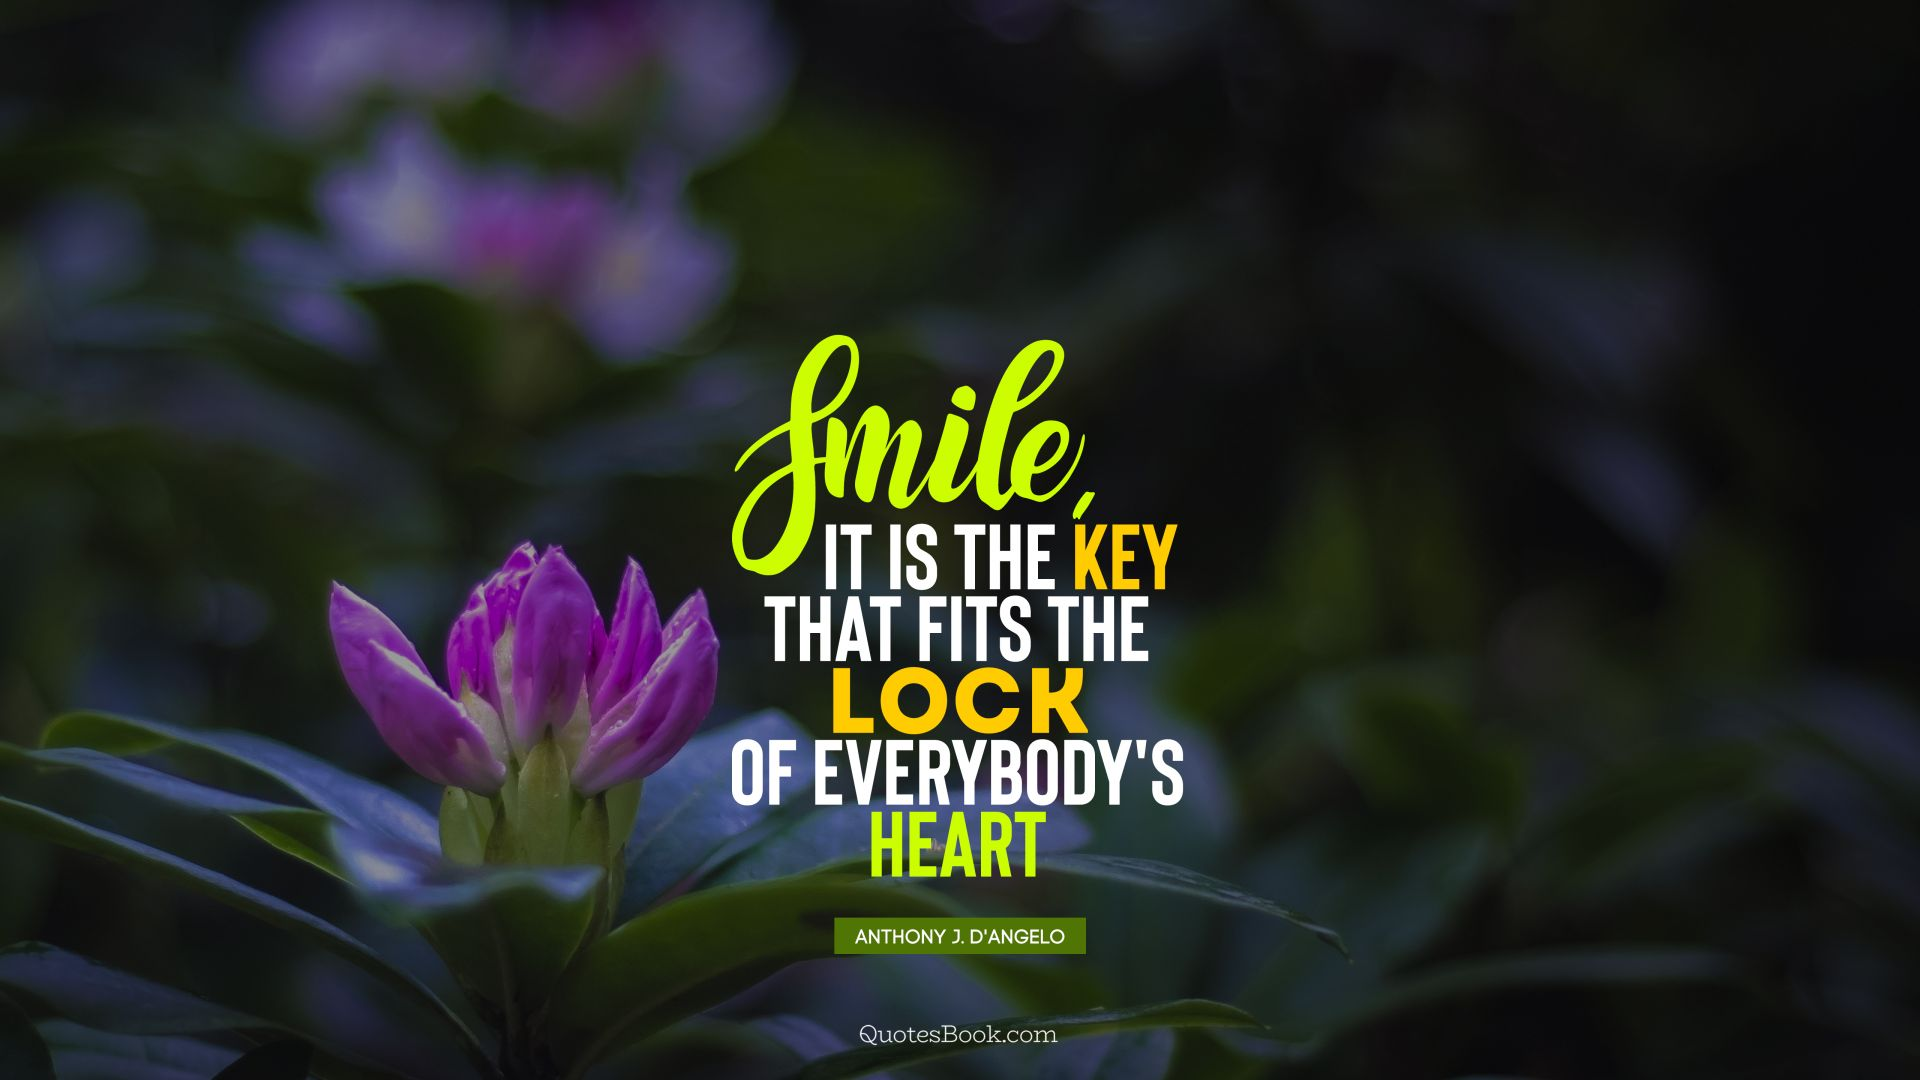 Smile, it is the key that fits the lock of everybody's heart. - Quote by Anthony J. D'Angelo